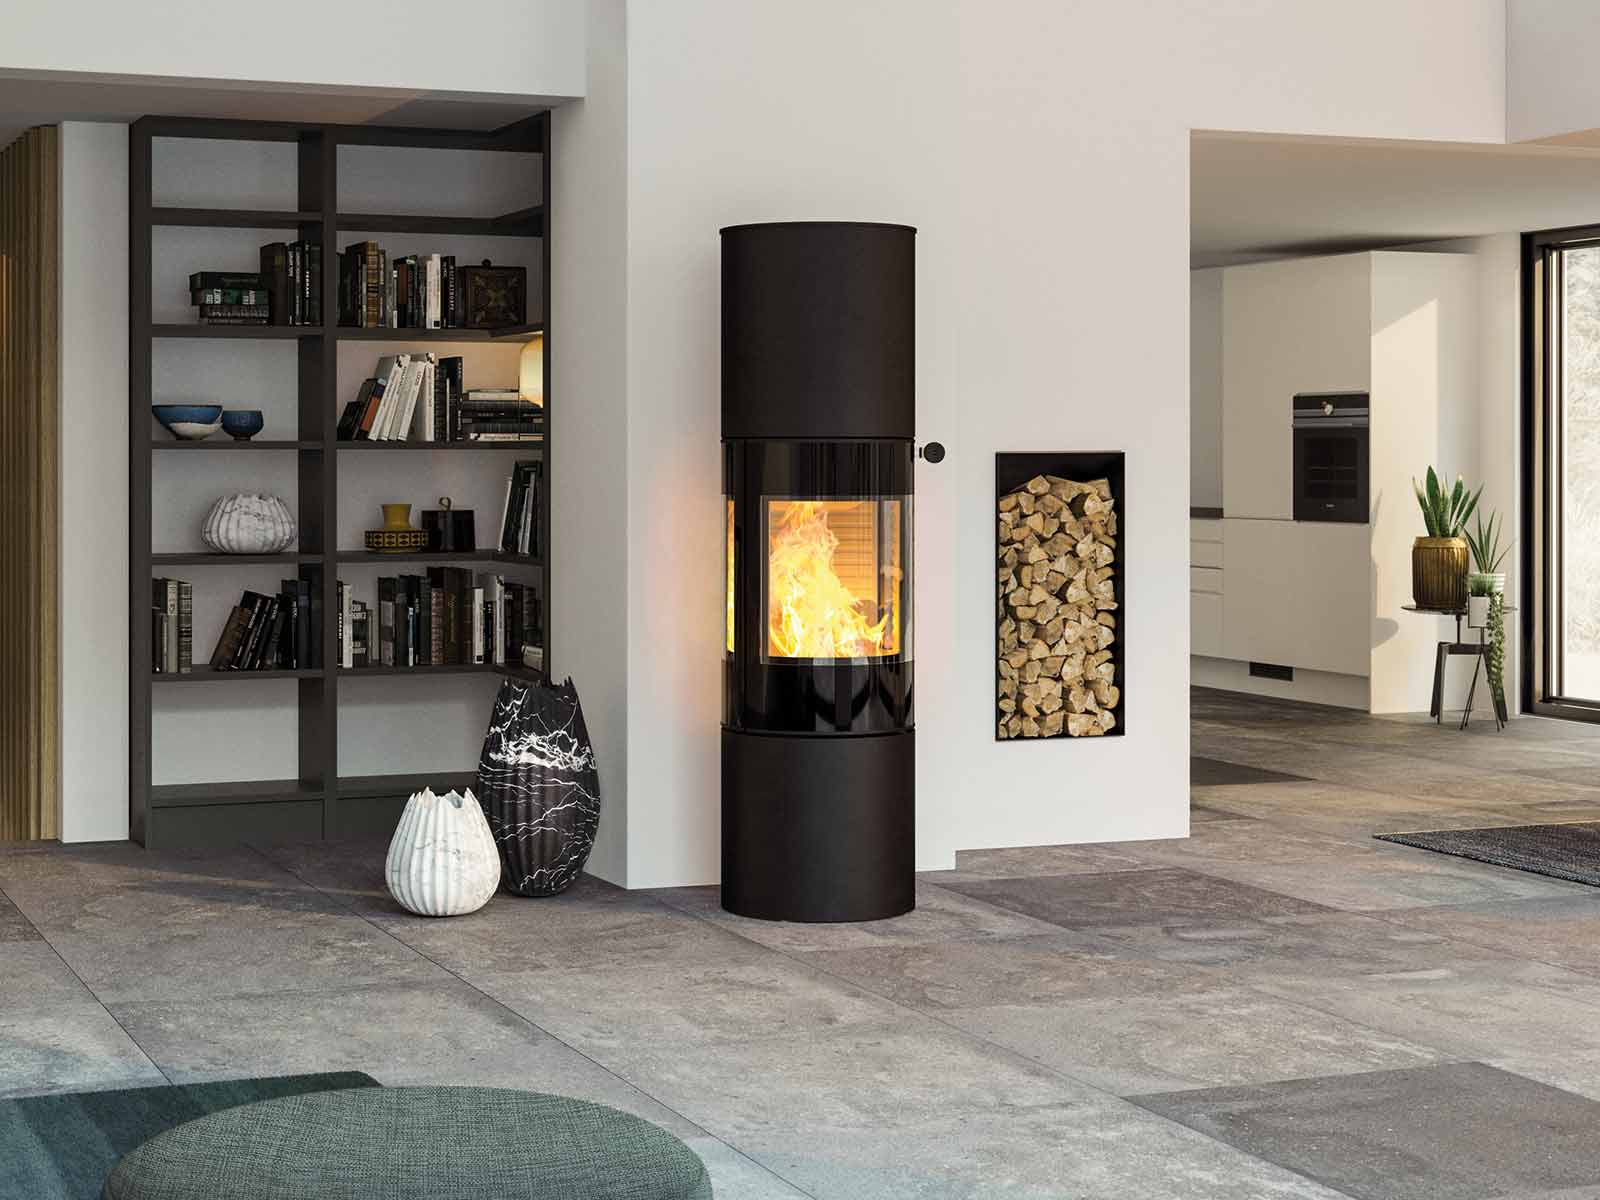 Holz Kaminofen Hersteller Attika Blog Useful Information About The Stove And Fireplaces